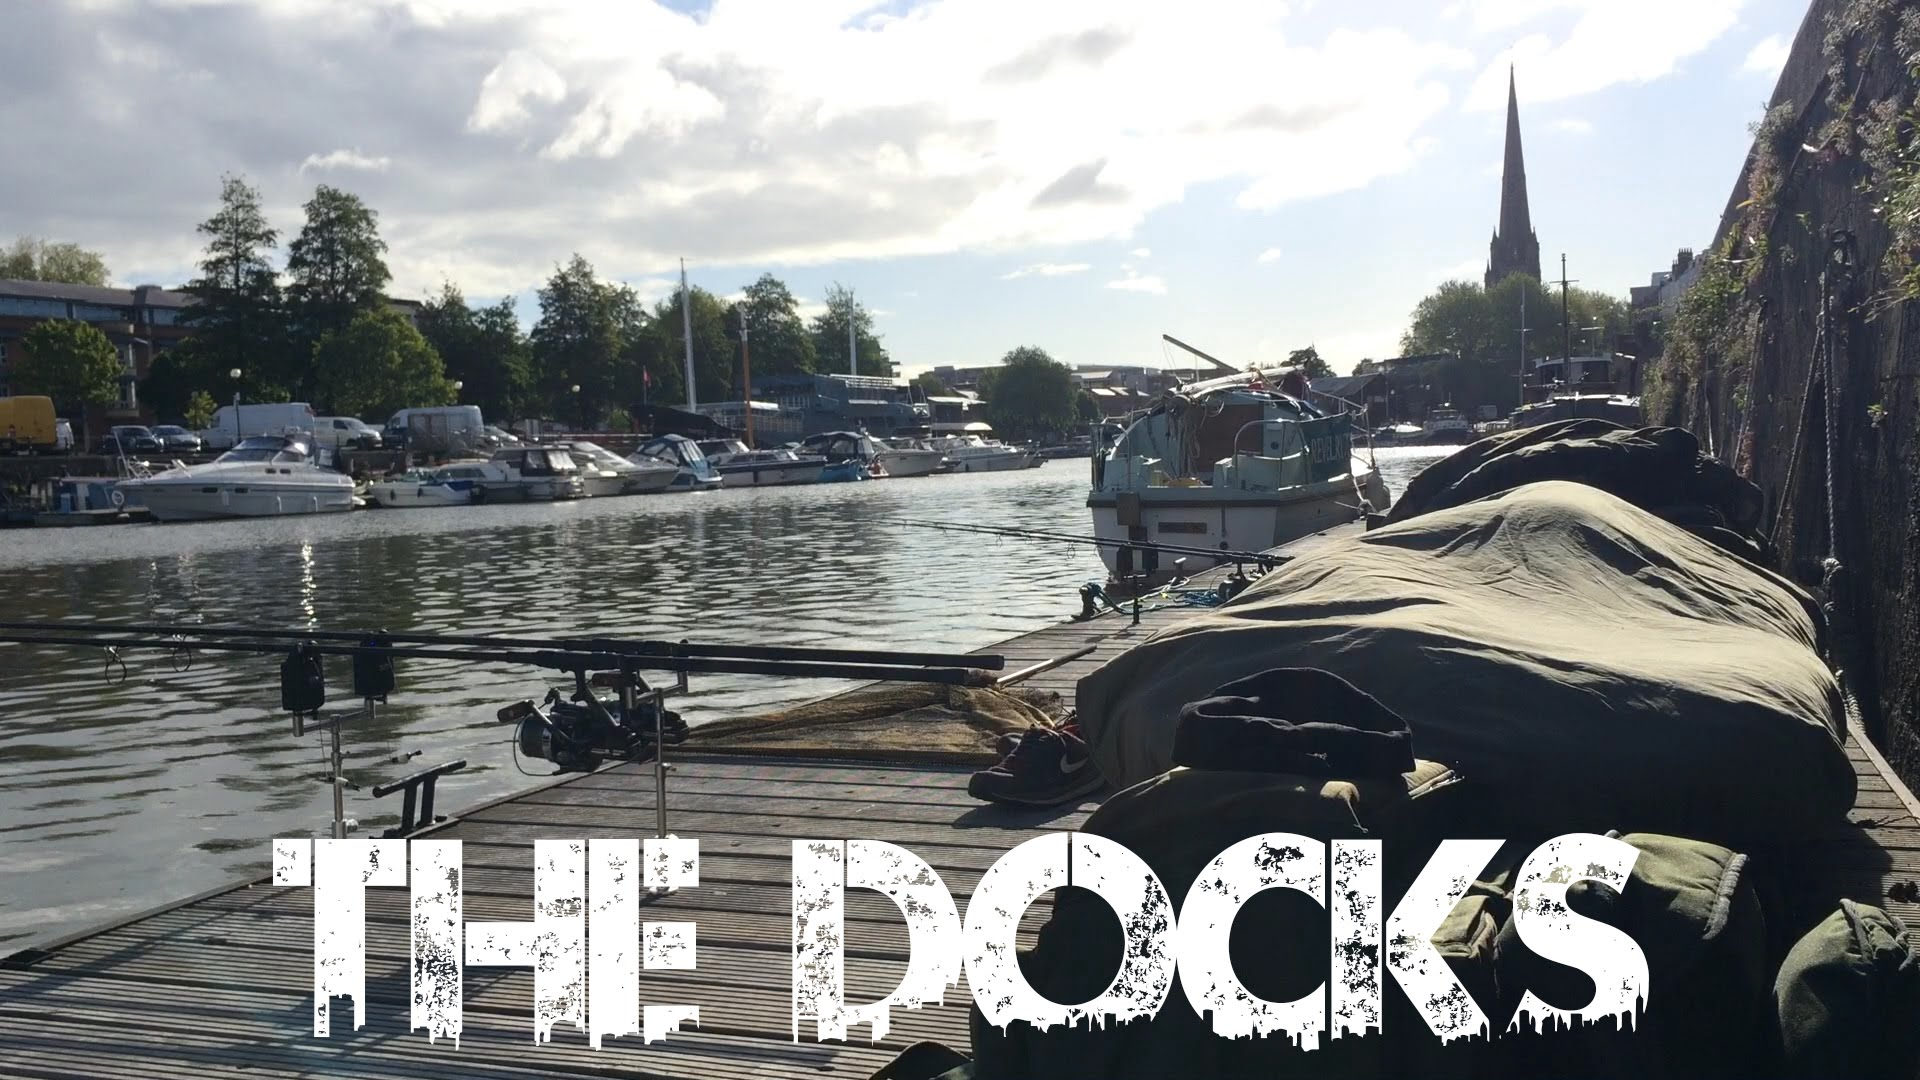 Urban Carp Fishing: The Docks